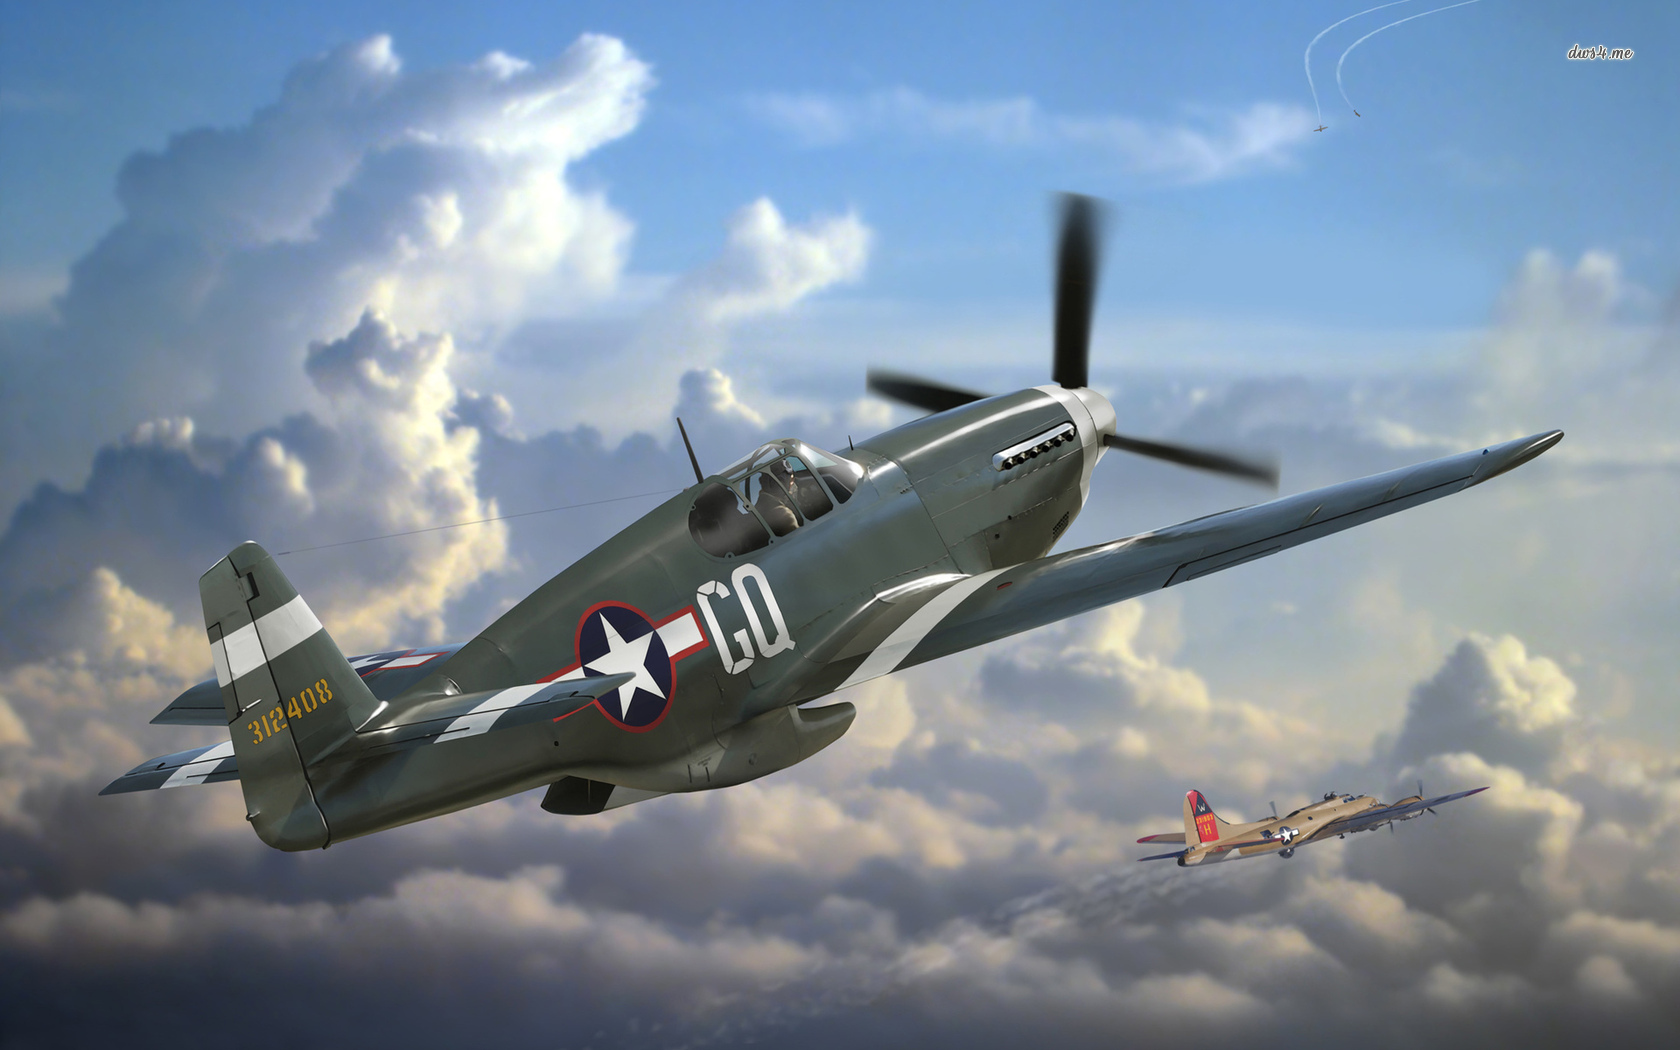 North American P 51 Mustang wallpaper   Aircraft wallpapers   32177 1680x1050